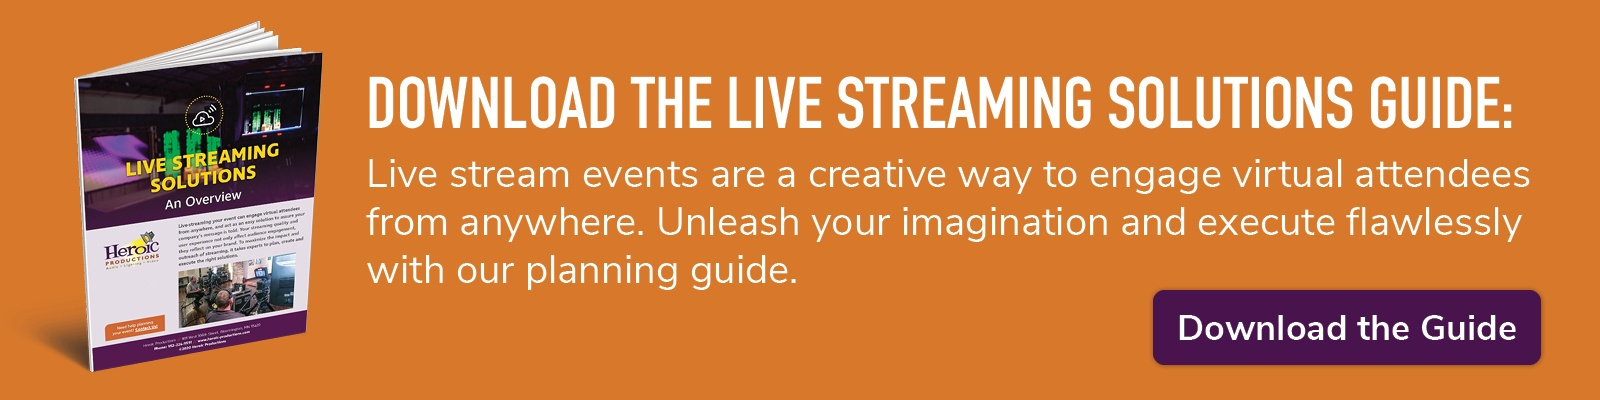 download the live streaming solutions guide; live stream events are a creative way to engage virtual attendees from anywhere; unleash your imagination and execute flawlessly with our planning guide; download the guide